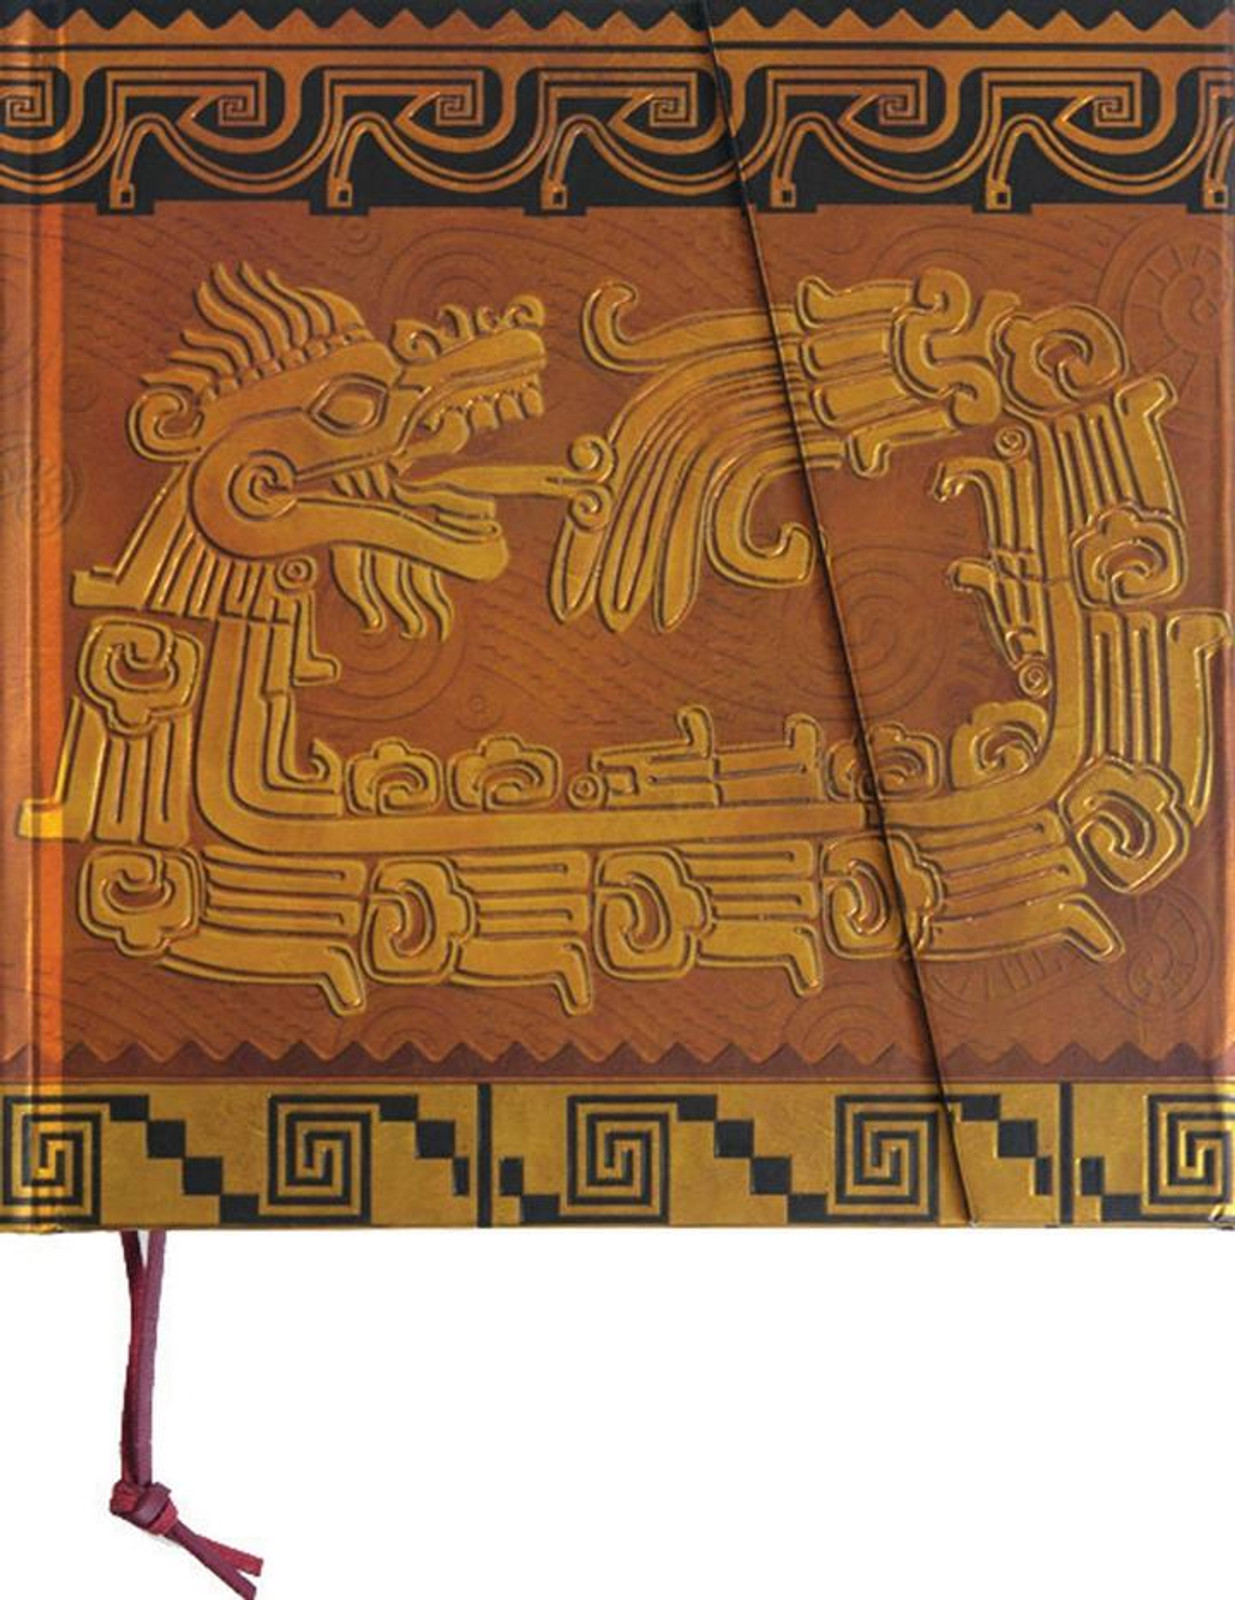 Precolombina Cultura Azteca Dragon Lined Notebook